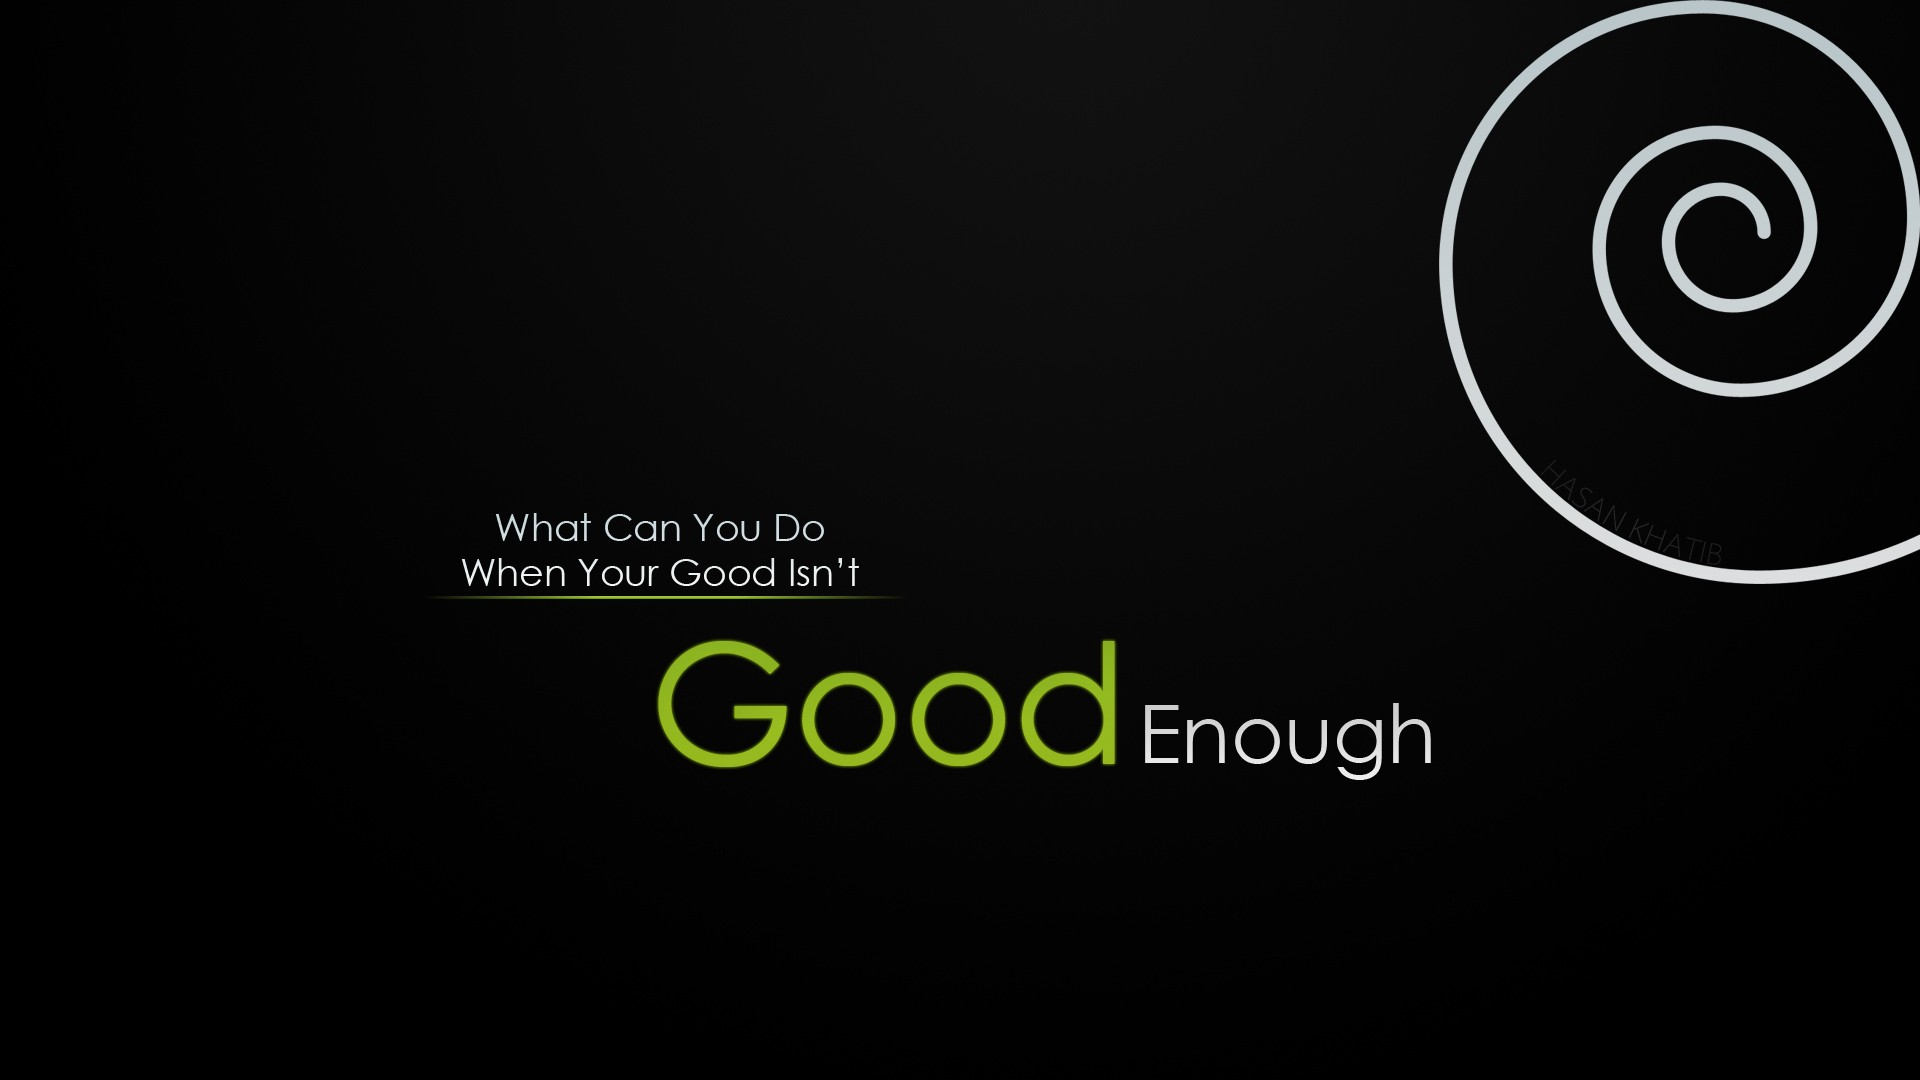 misc motivational wallpaper 1920x1080 - photo #4